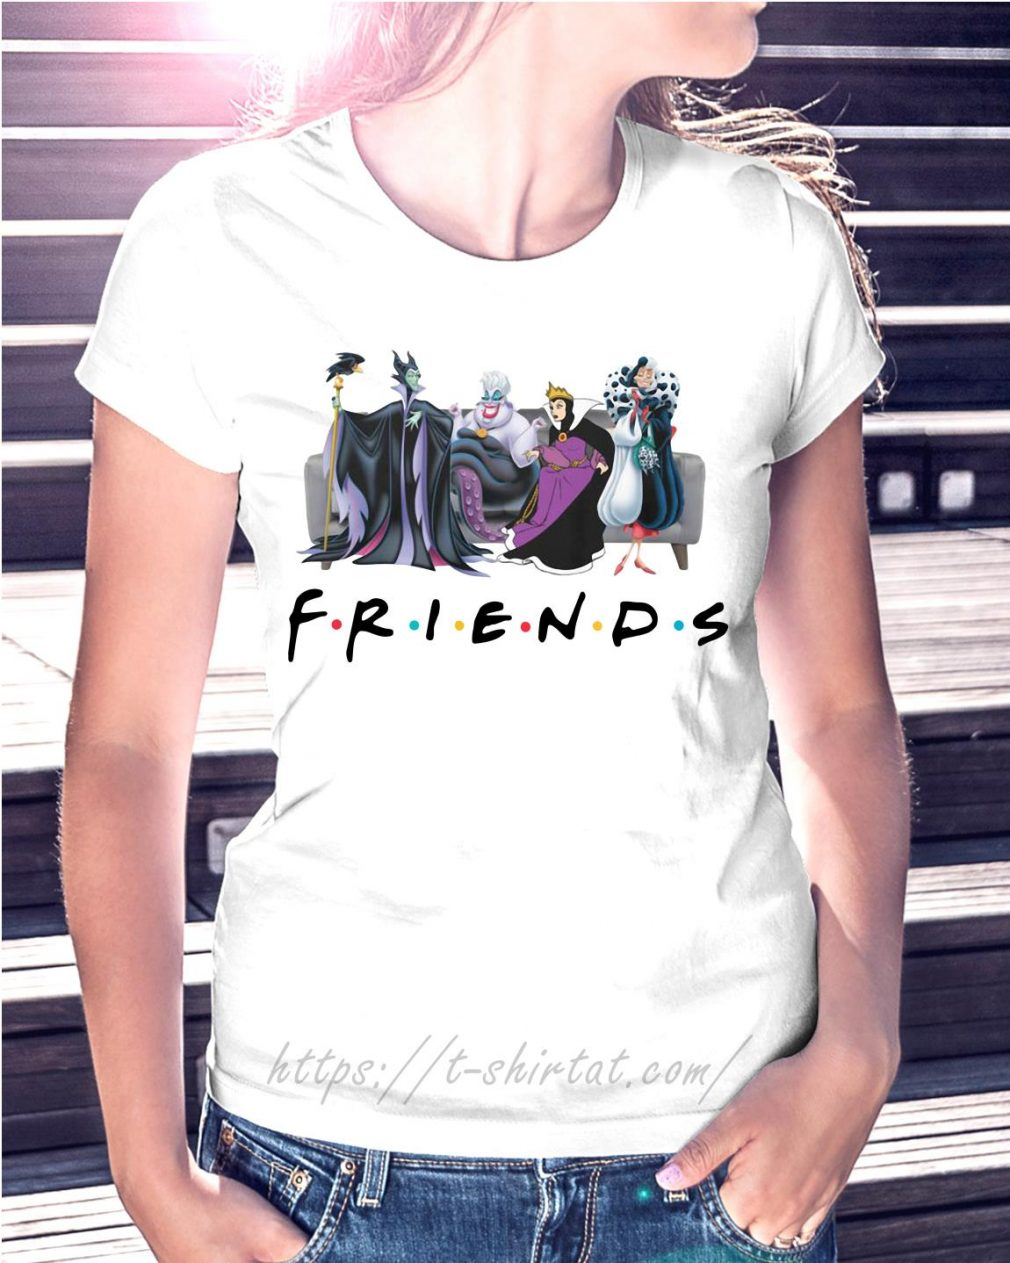 Disney Queens friends Cruella De Vil evil Queen Ursula maleficent shirtDisney Queens friends Cruella De Vil evil Queen Ursula maleficent